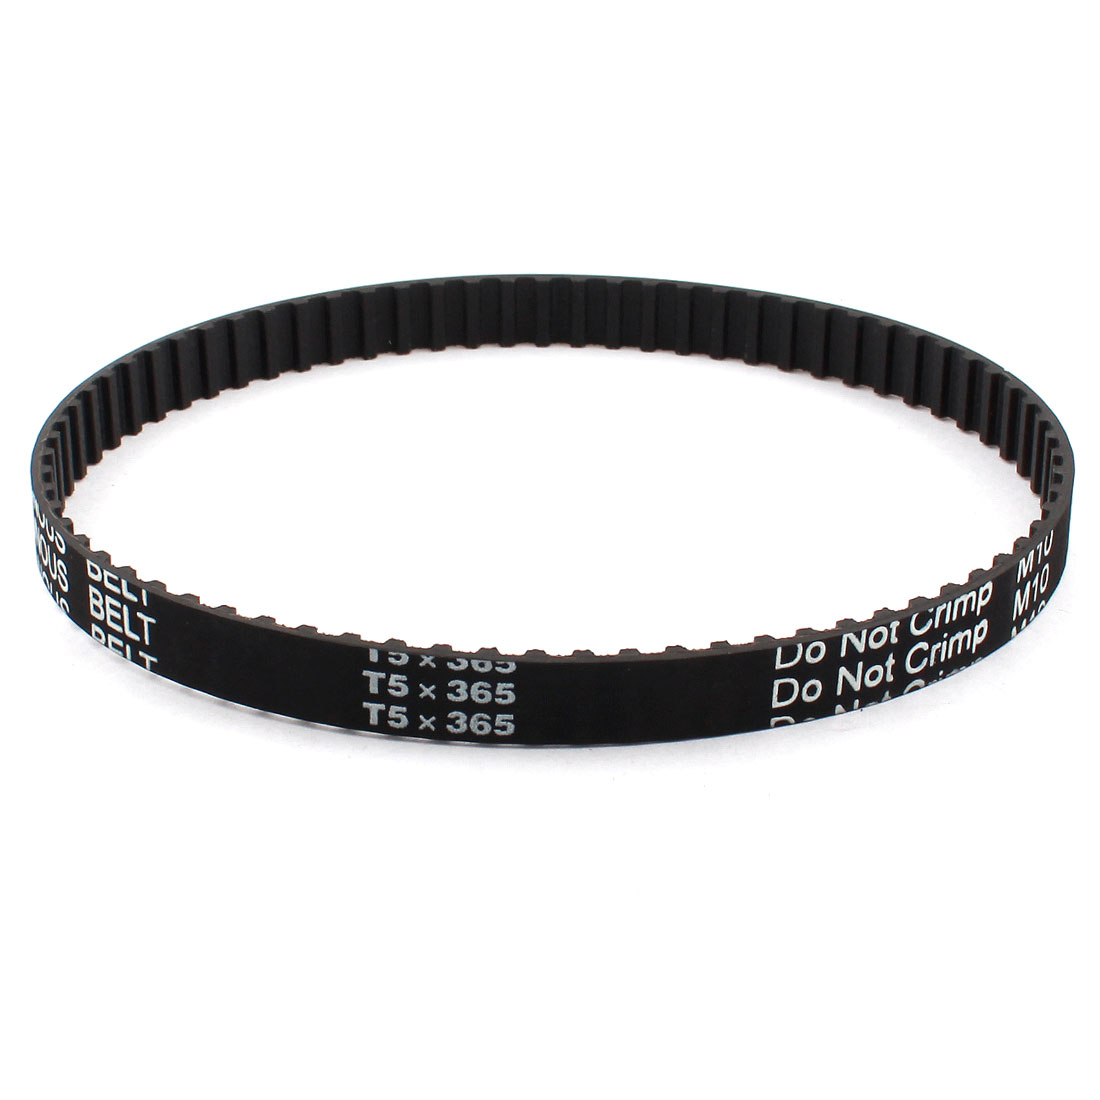 T5x365 73-Teeth 10mm Width 5mm Pitch Black Industrial 3D Printer Groove Synchronous Timing Belt 365mm Girth